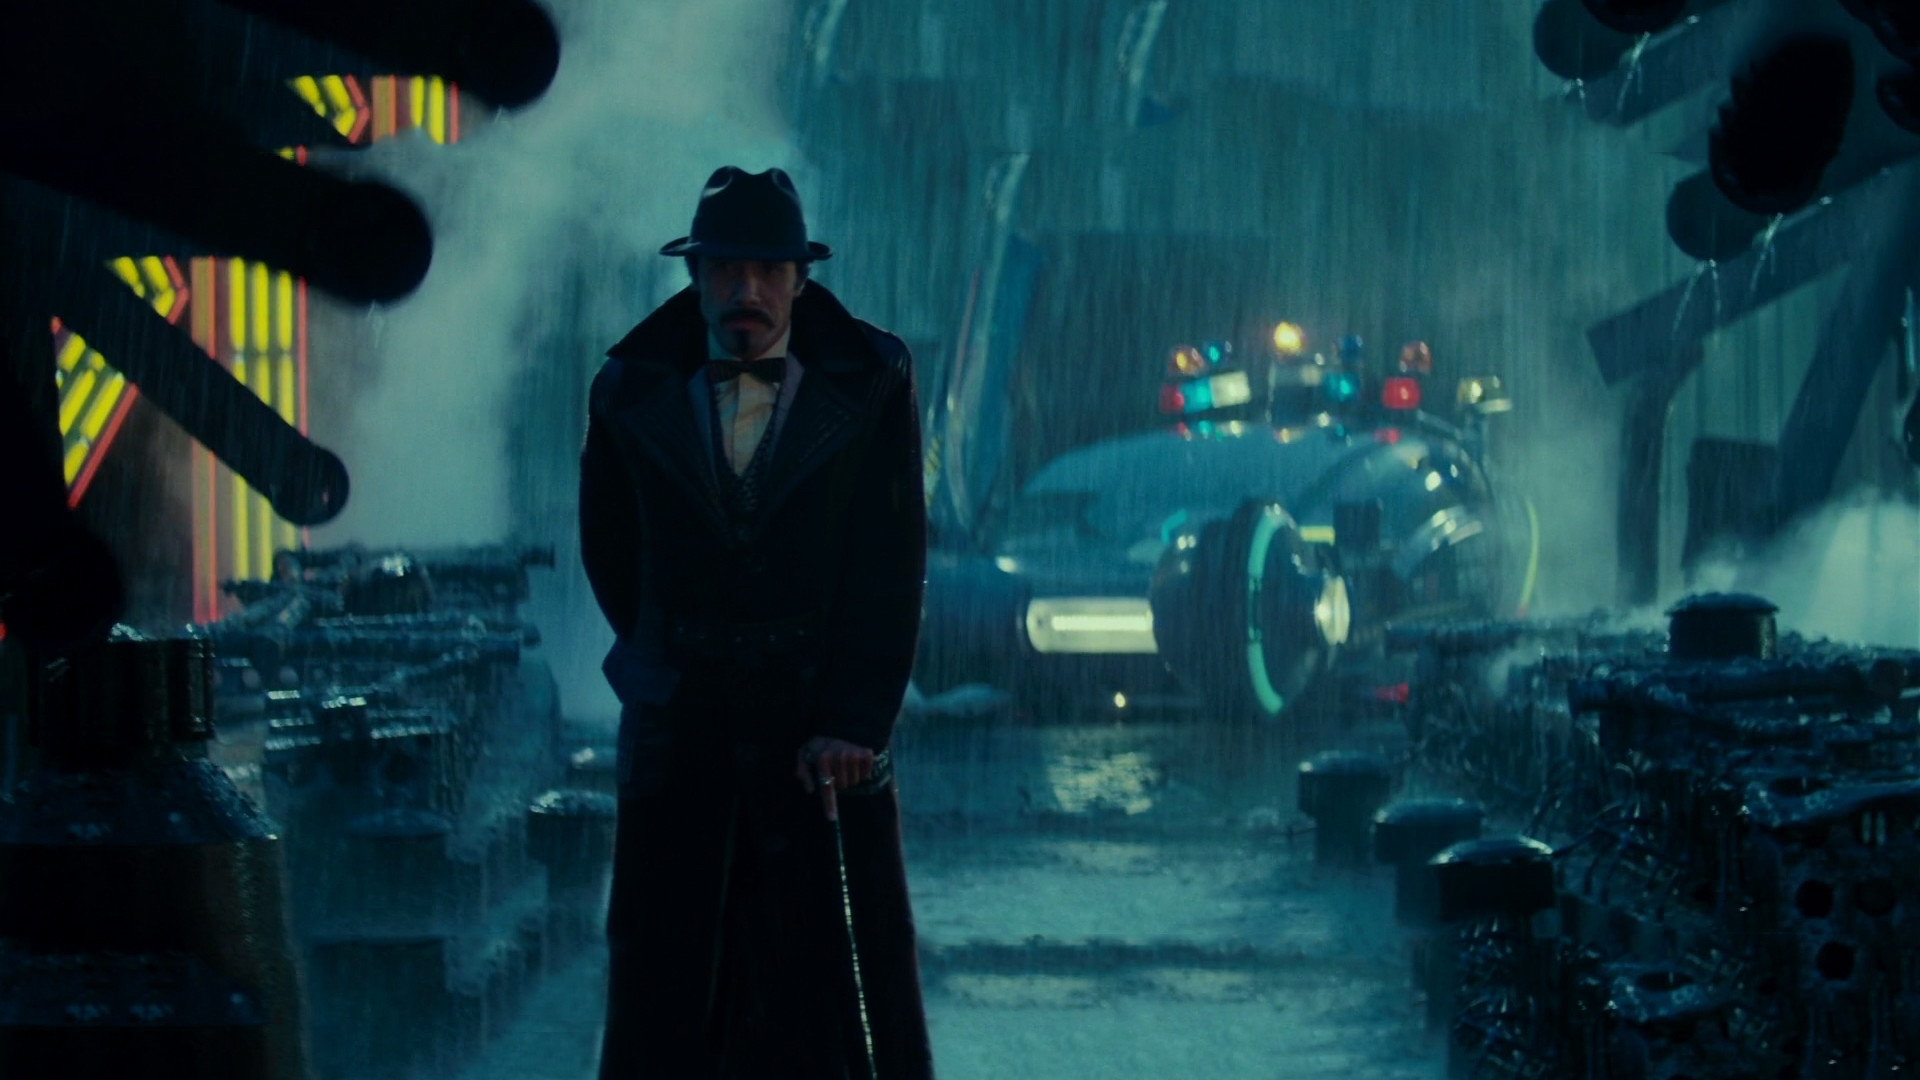 Res: 1920x1080, Blade Runner Wallpapers 16 - 1920 X 1080